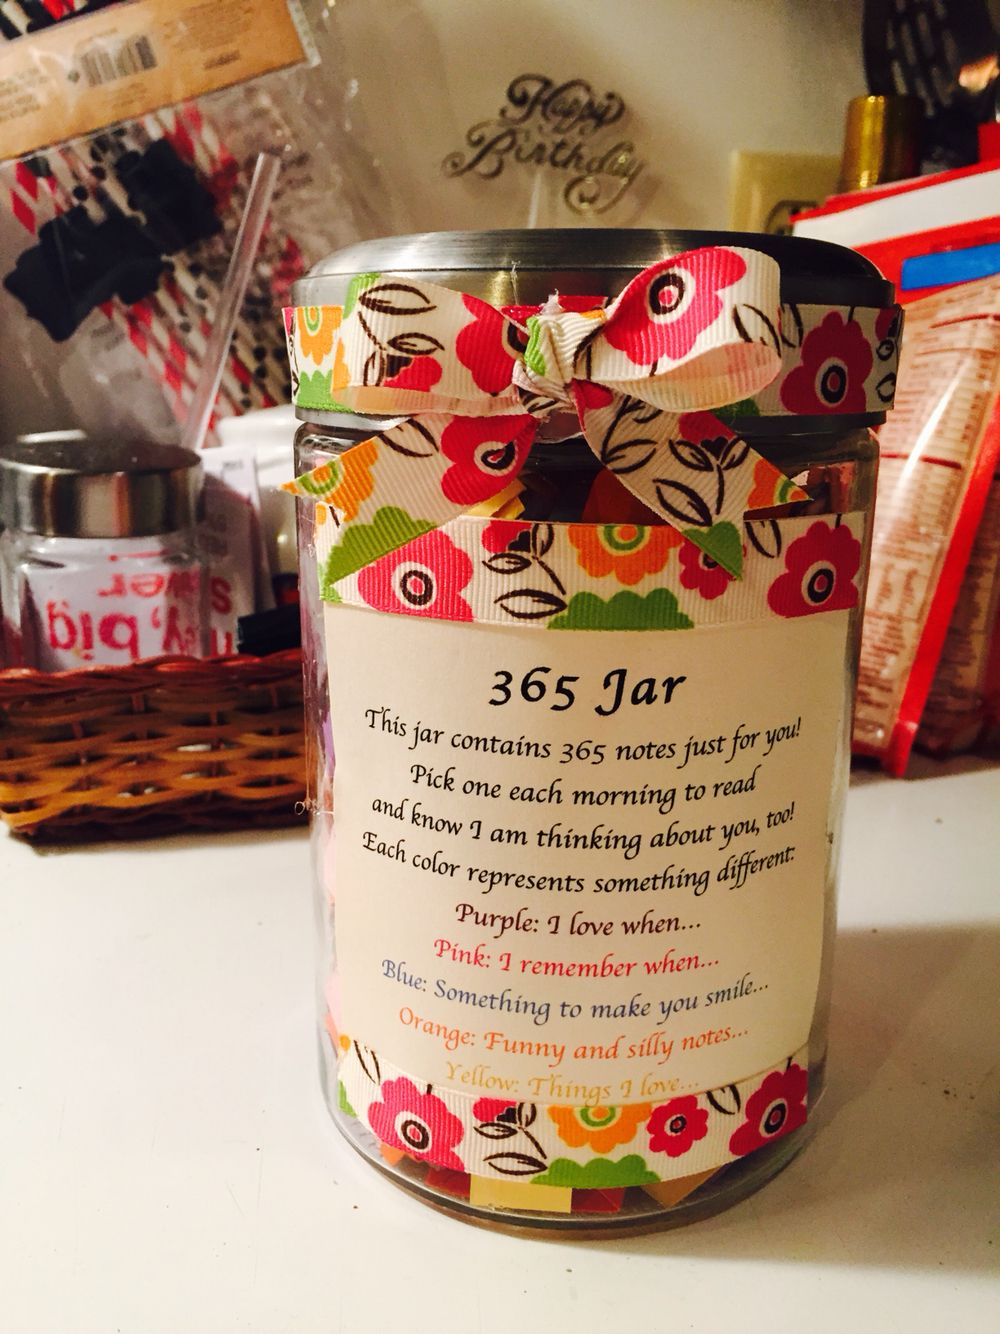 Fun 365 Jar Great Gift Idea For Someone To Last Throughout The Year 365 Sweet Notes Memories One For Each Day Of The Year Boyfriend Gifts Jar Jar Gifts